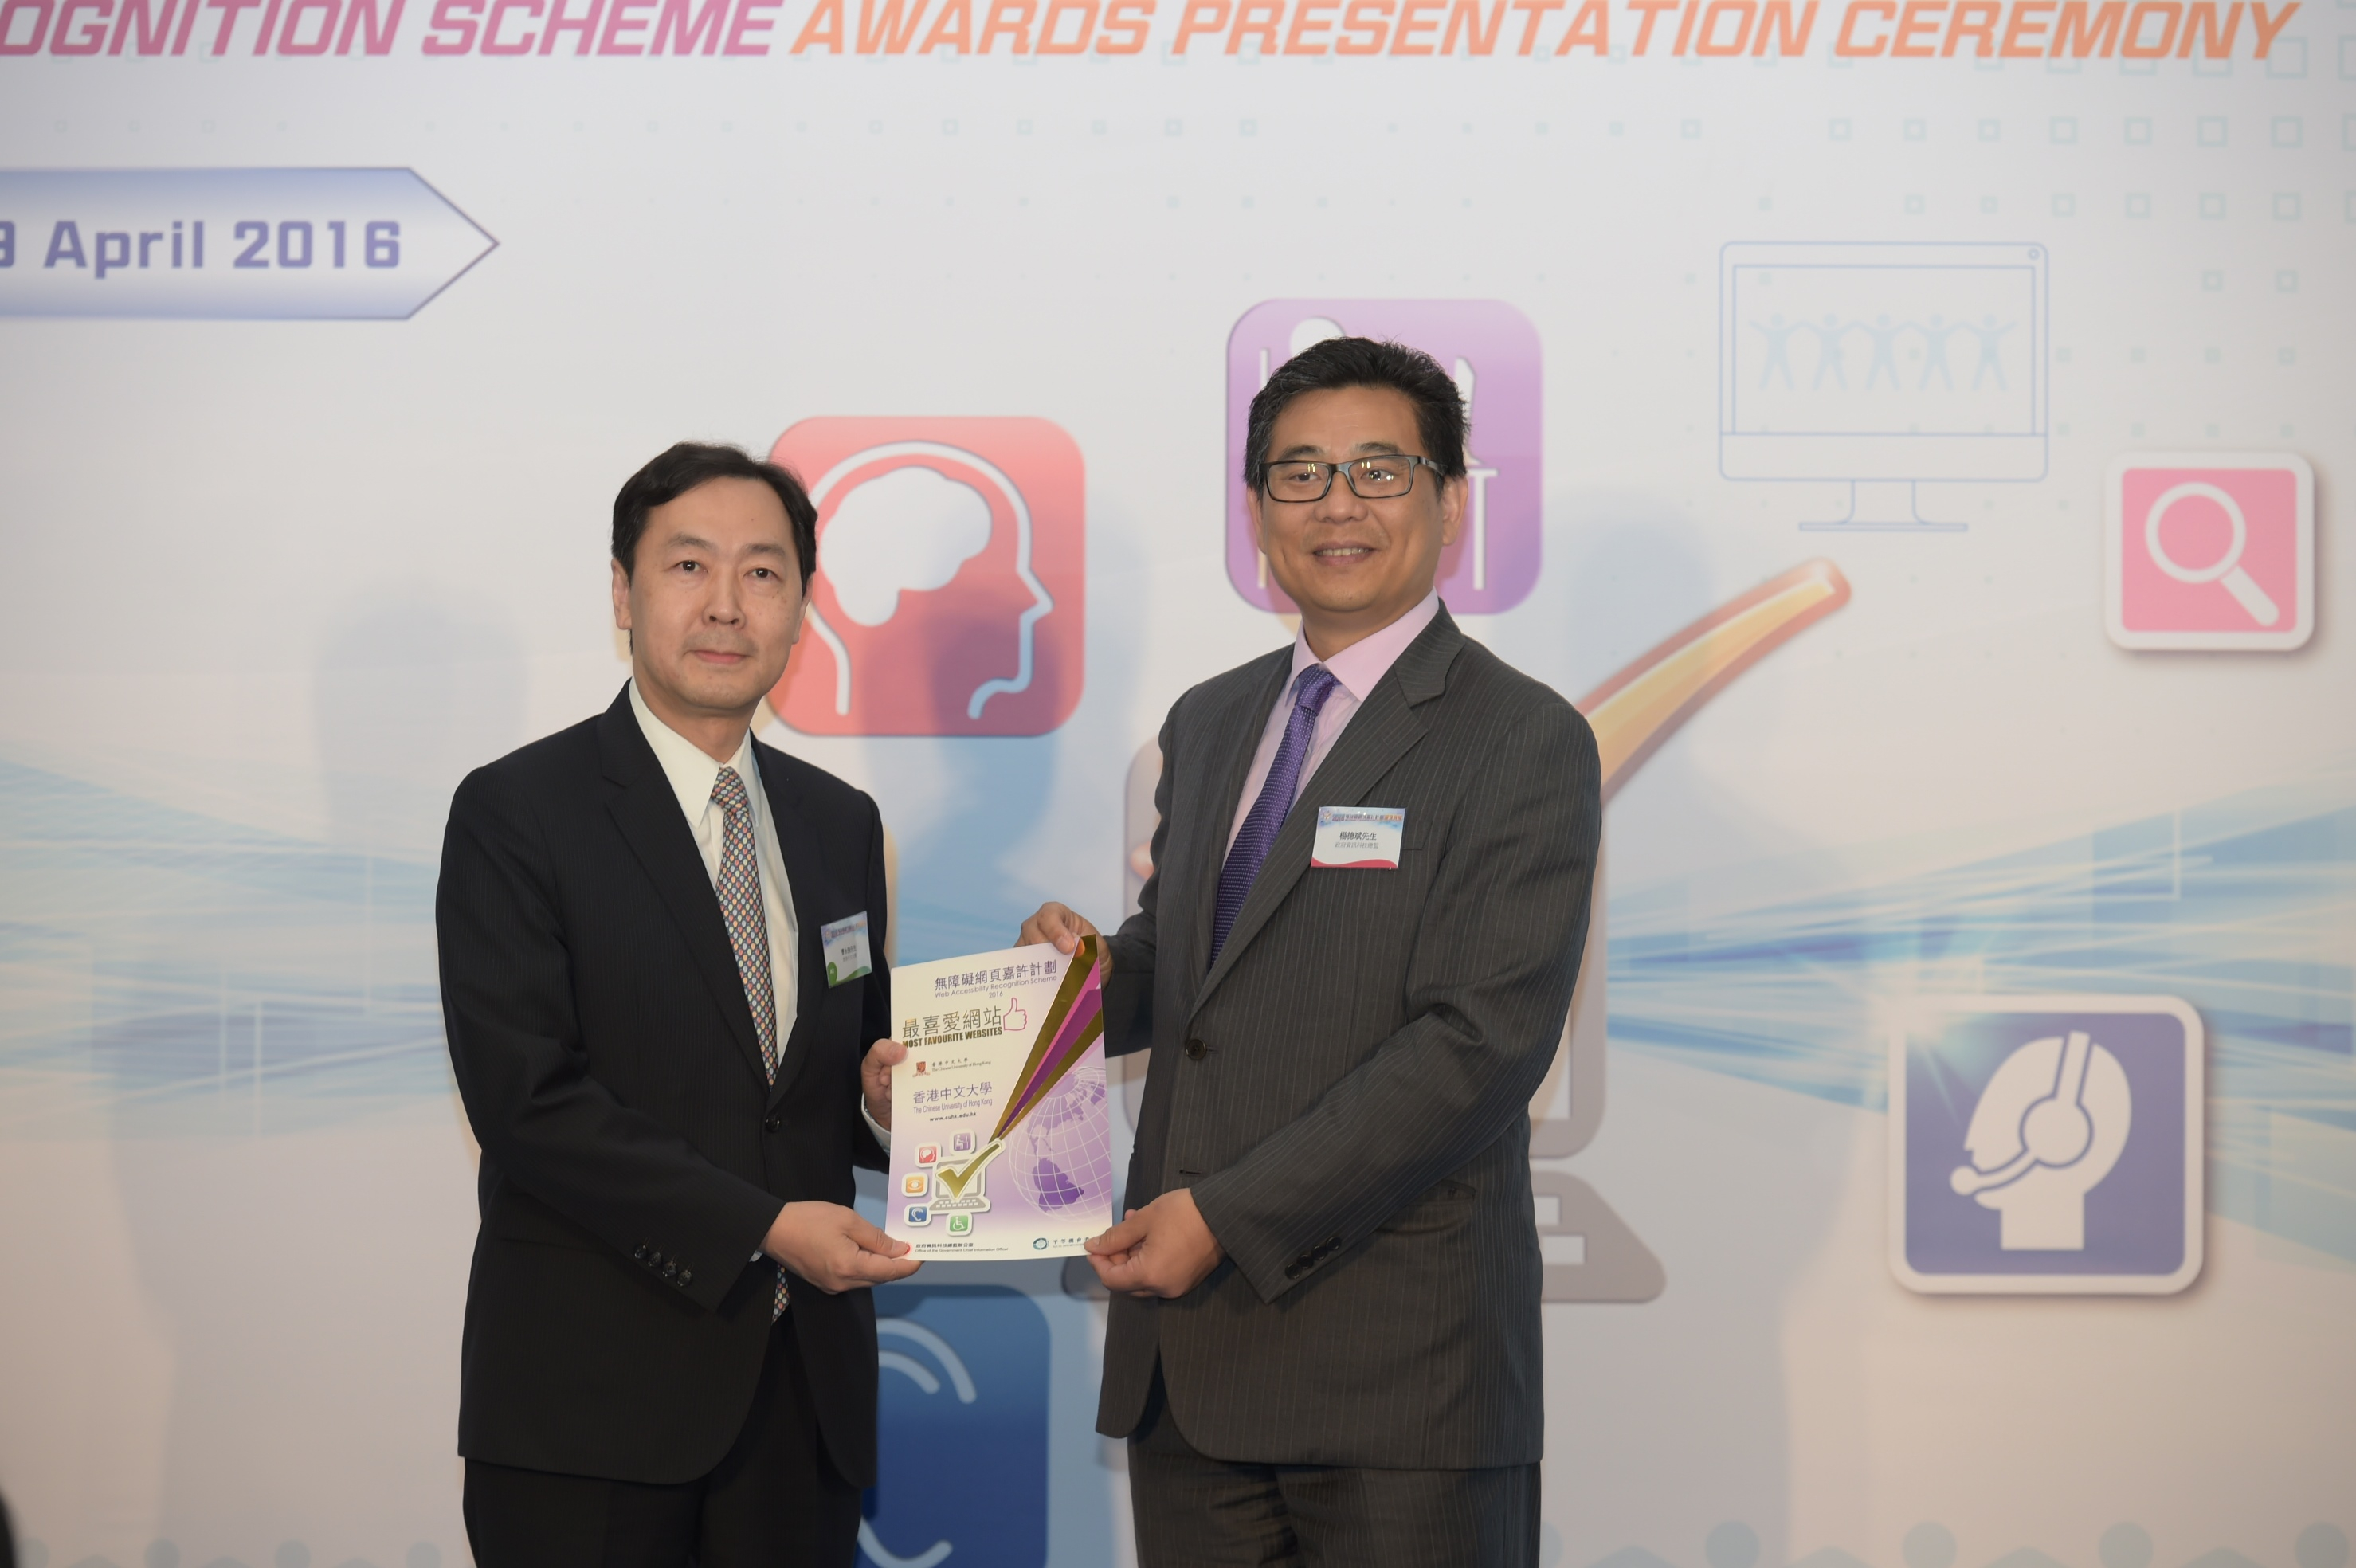 Ir. Allen Yeung, Government Chief Information Officer (right) presents the 'Most Favourite Website Award' to Mr. Tommy Cho, Director of Information Services Office of CUHK.